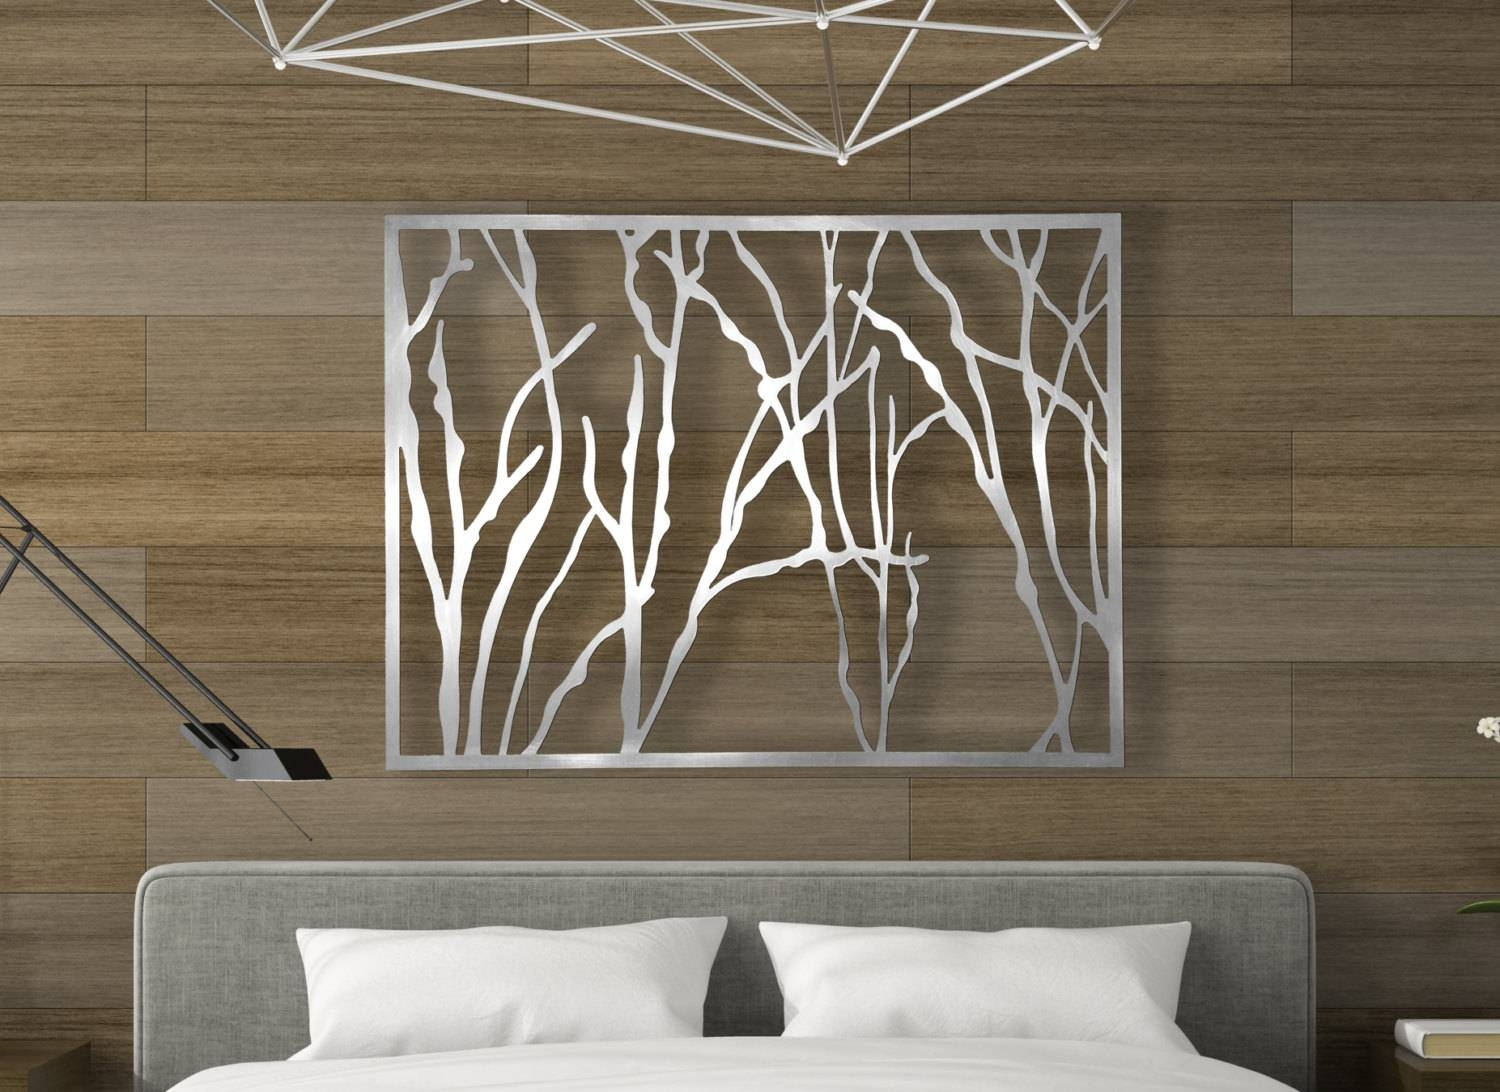 Laser Cut Metal Decorative Wall Art Panel Sculpture For Home Within Most Recently Released Indoor Metal Wall Art (View 8 of 20)